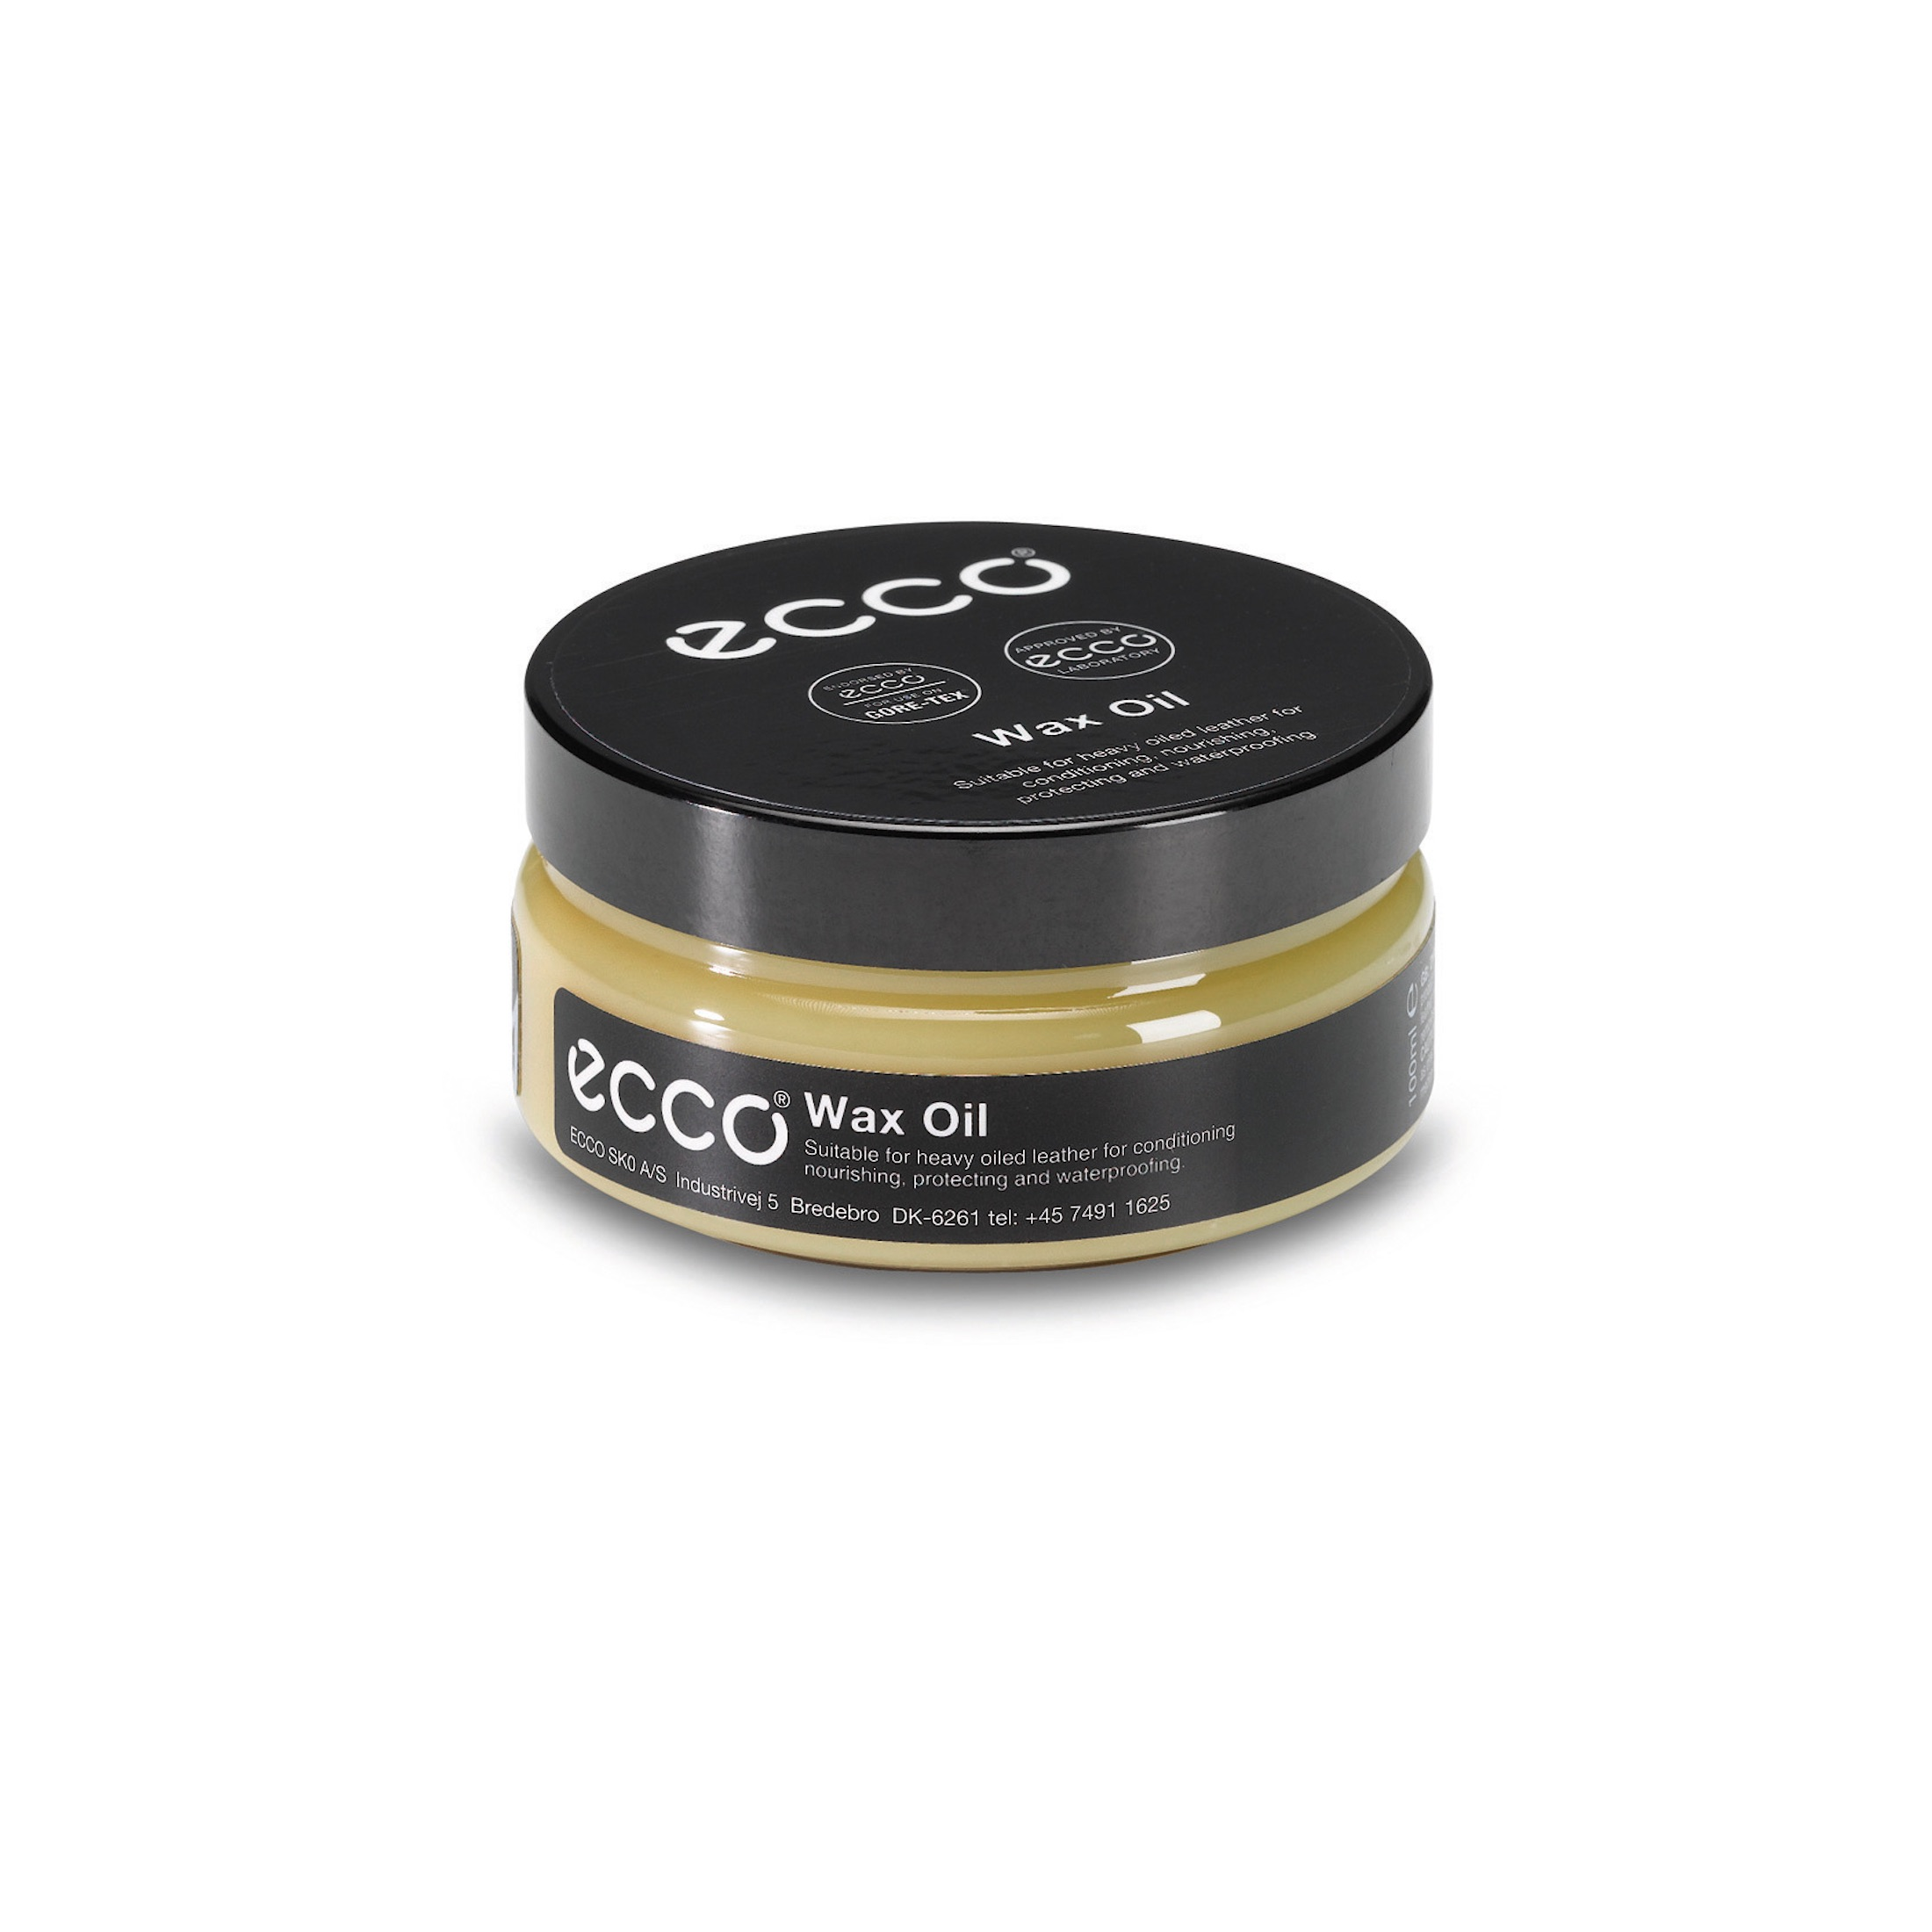 Image of ECCO Wax Oil